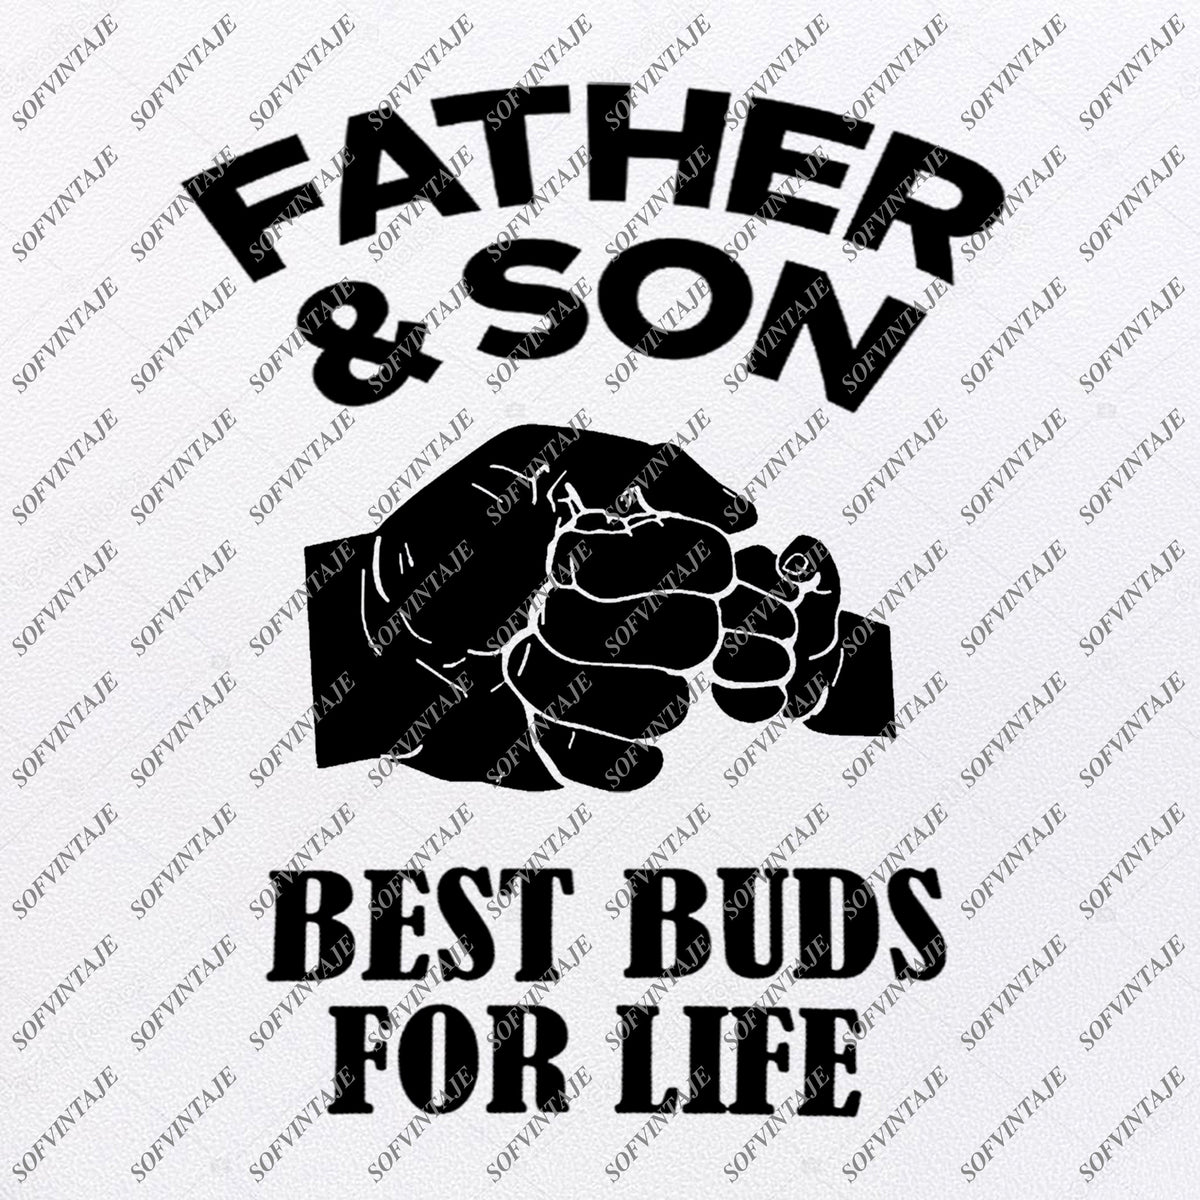 Free Our father's day cards honor dads with styles from traditional to trendy, and you can choose from options like photo layouts, rib ticklers, classic illustrations, and fancy. Father And Son Best Buds For Life Svg Files Father S Day Svg Design Sofvintaje SVG, PNG, EPS, DXF File